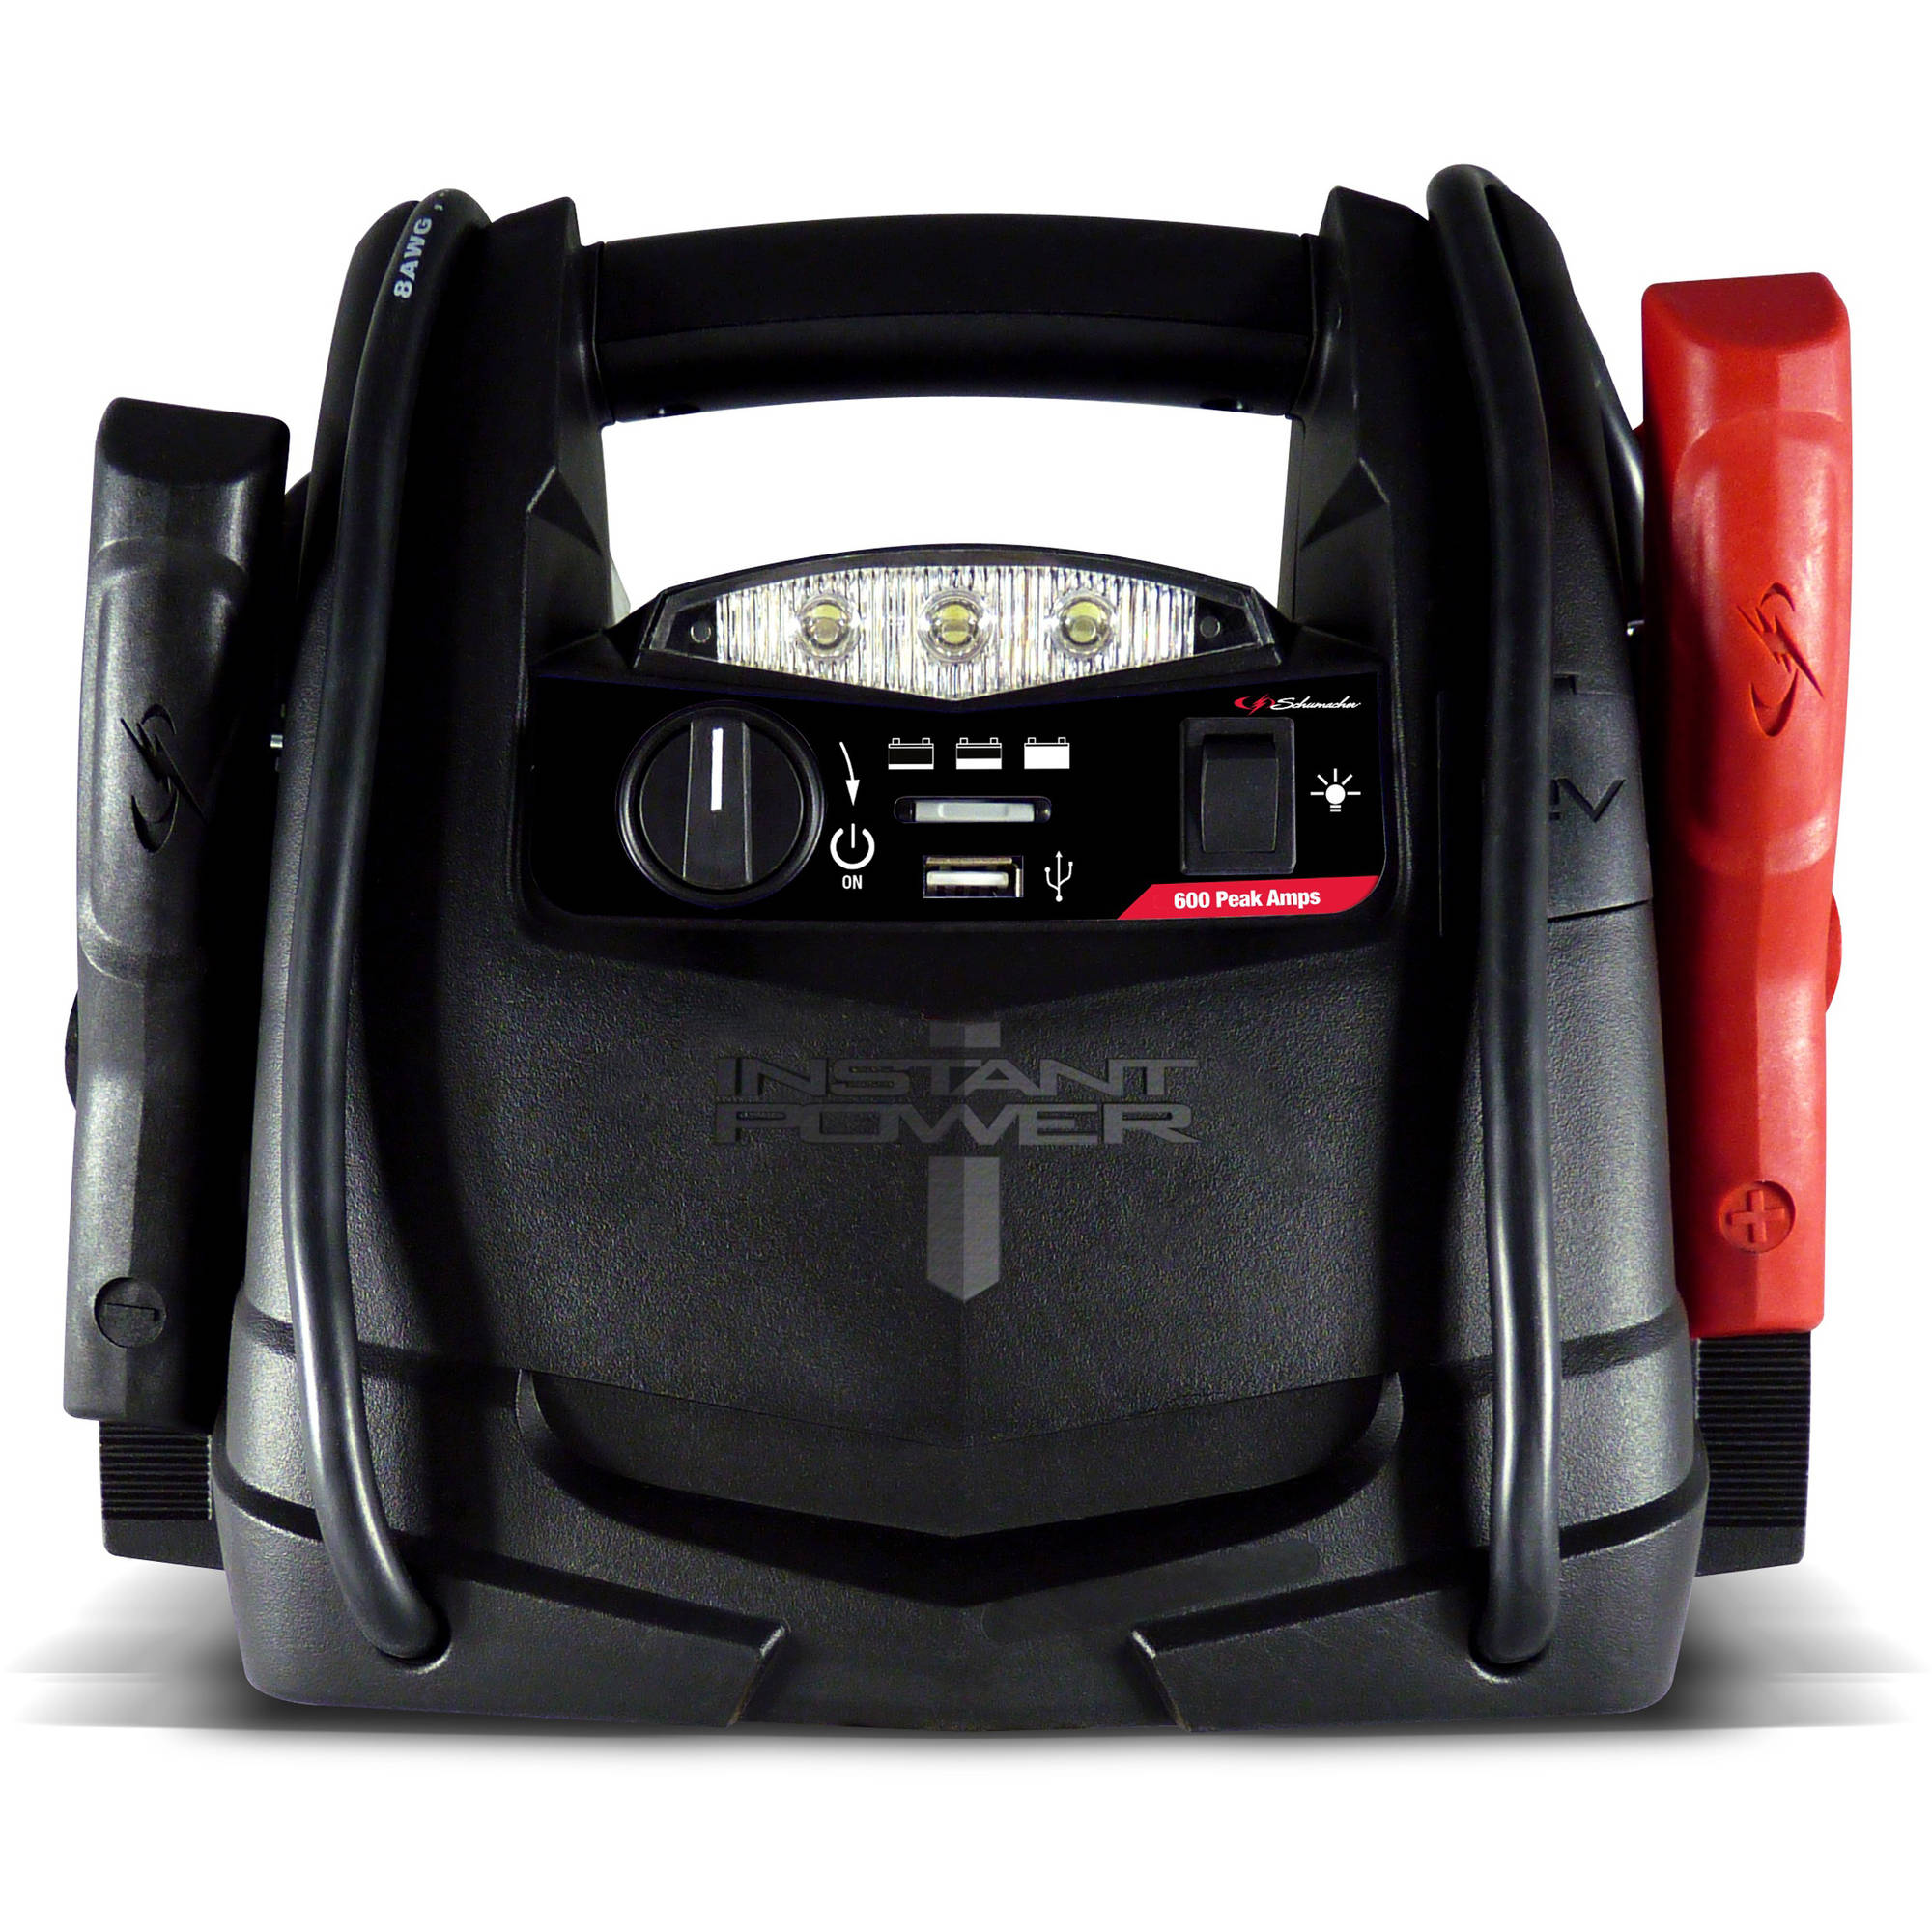 Portable Battery Heater Schumacher Electric 600 Amp Jump Starter Walmartcom